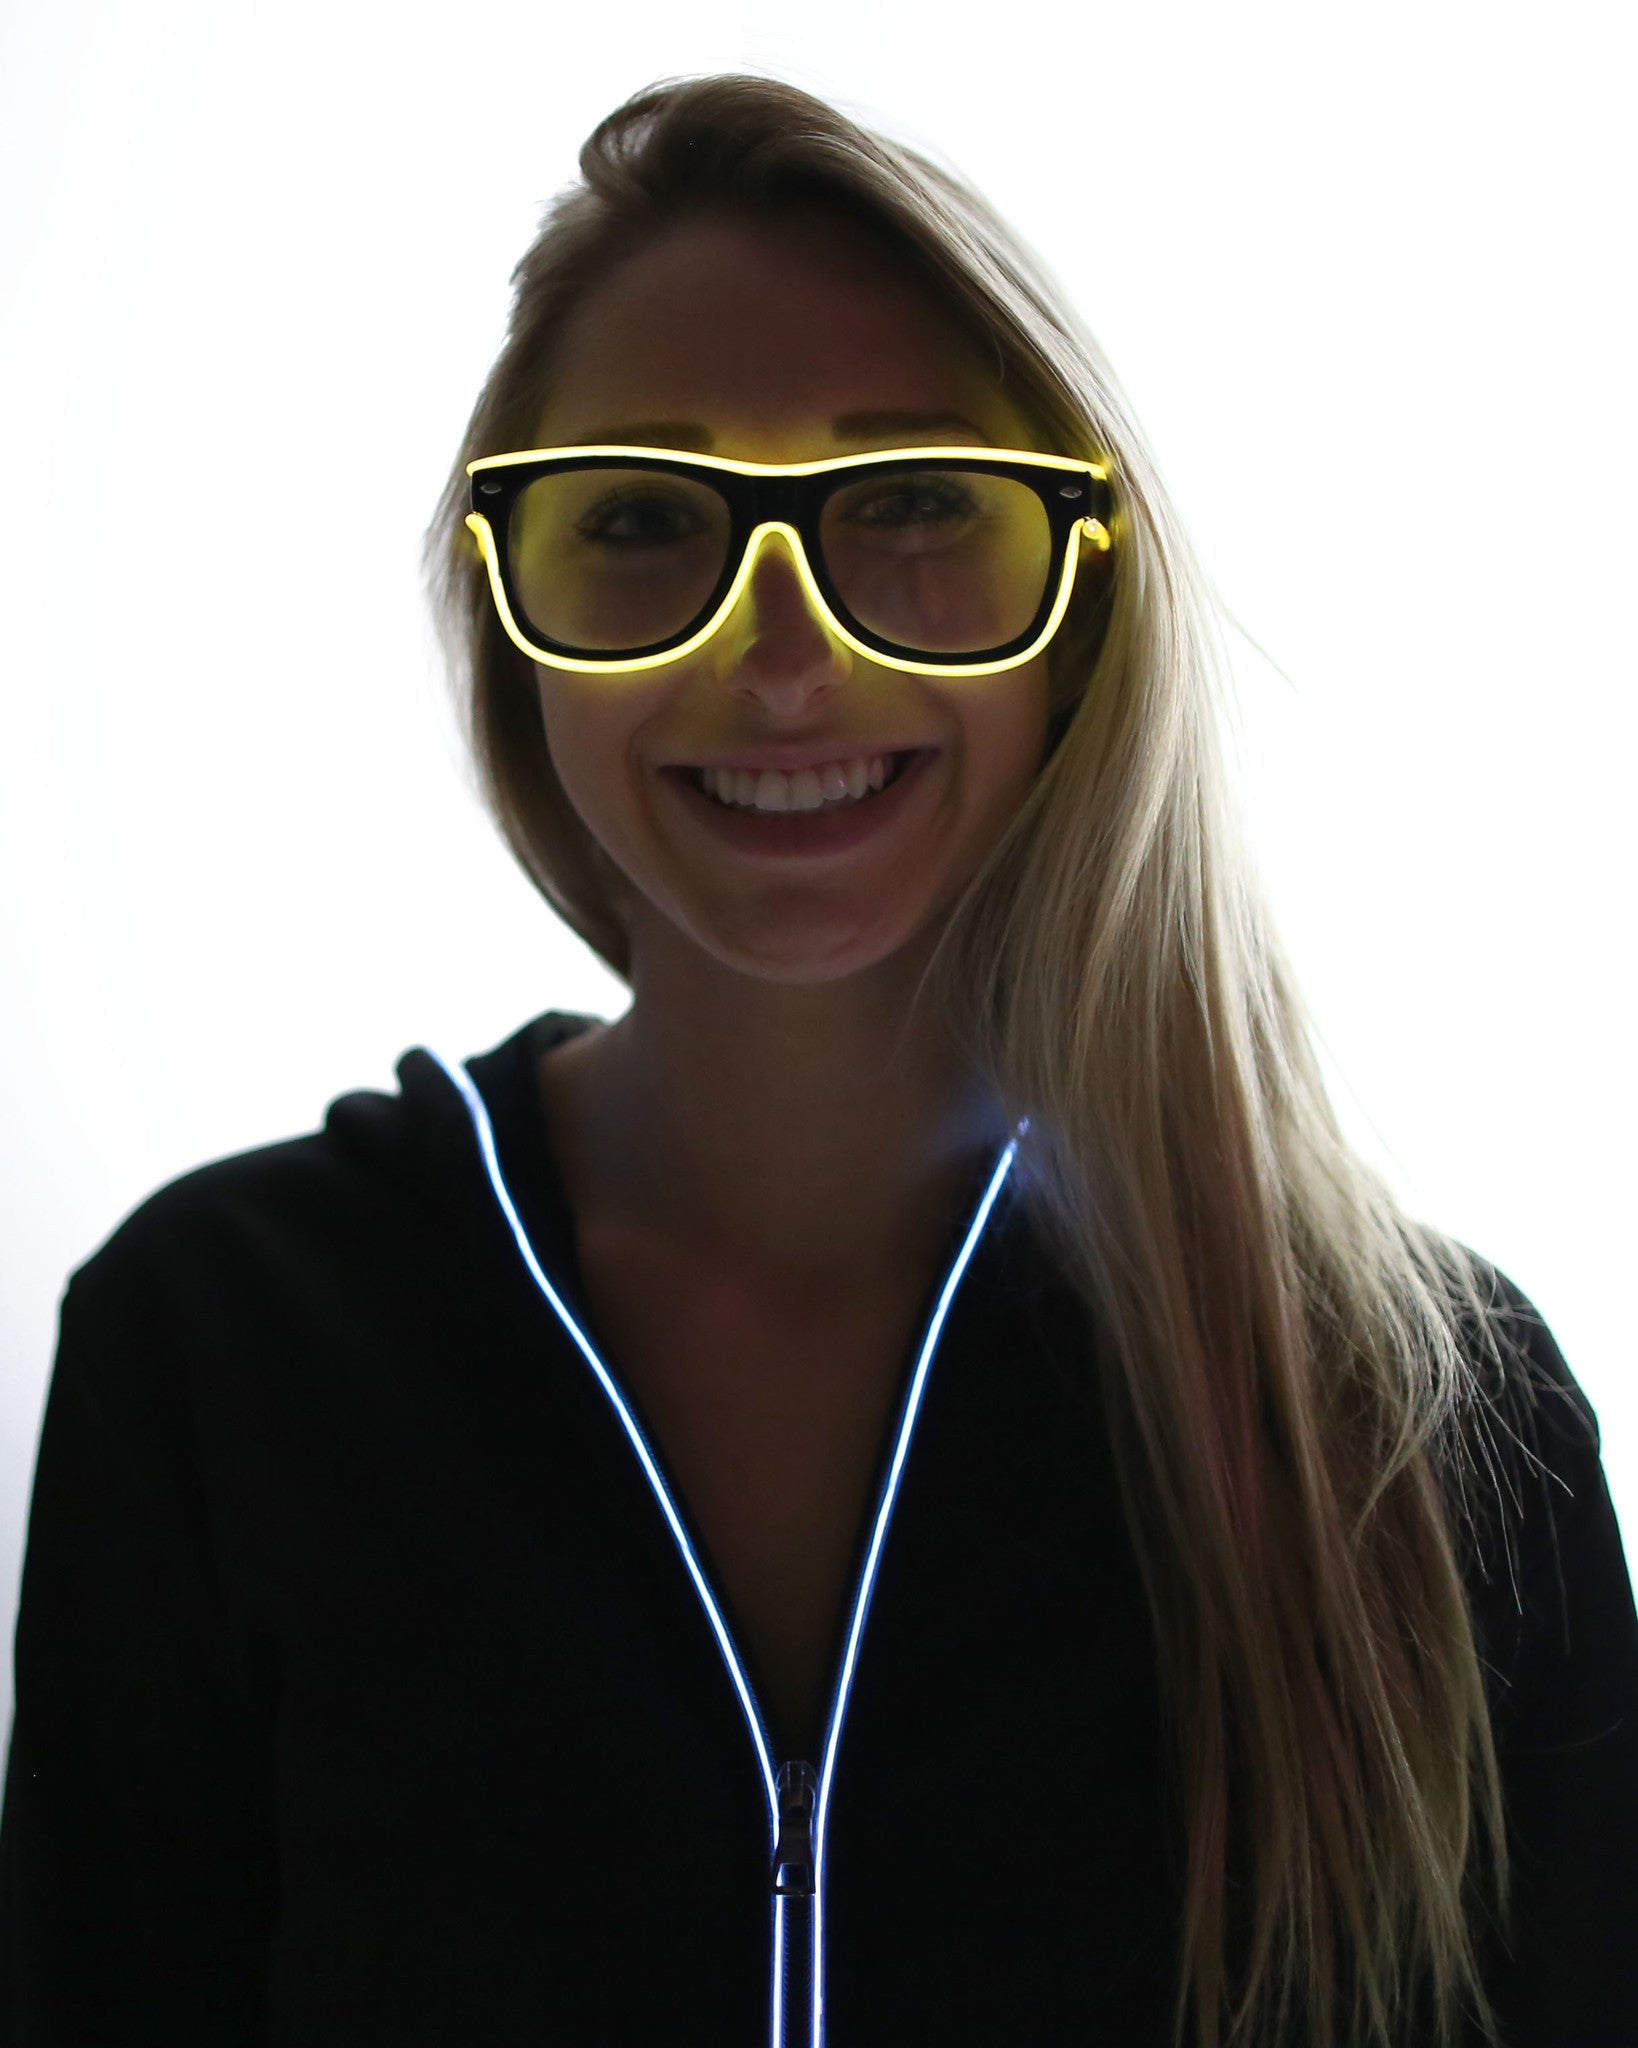 Light Up Glasses - Electric Styles | World's Number 1 Light Up Shoe Store - {product_type}} -  - 6